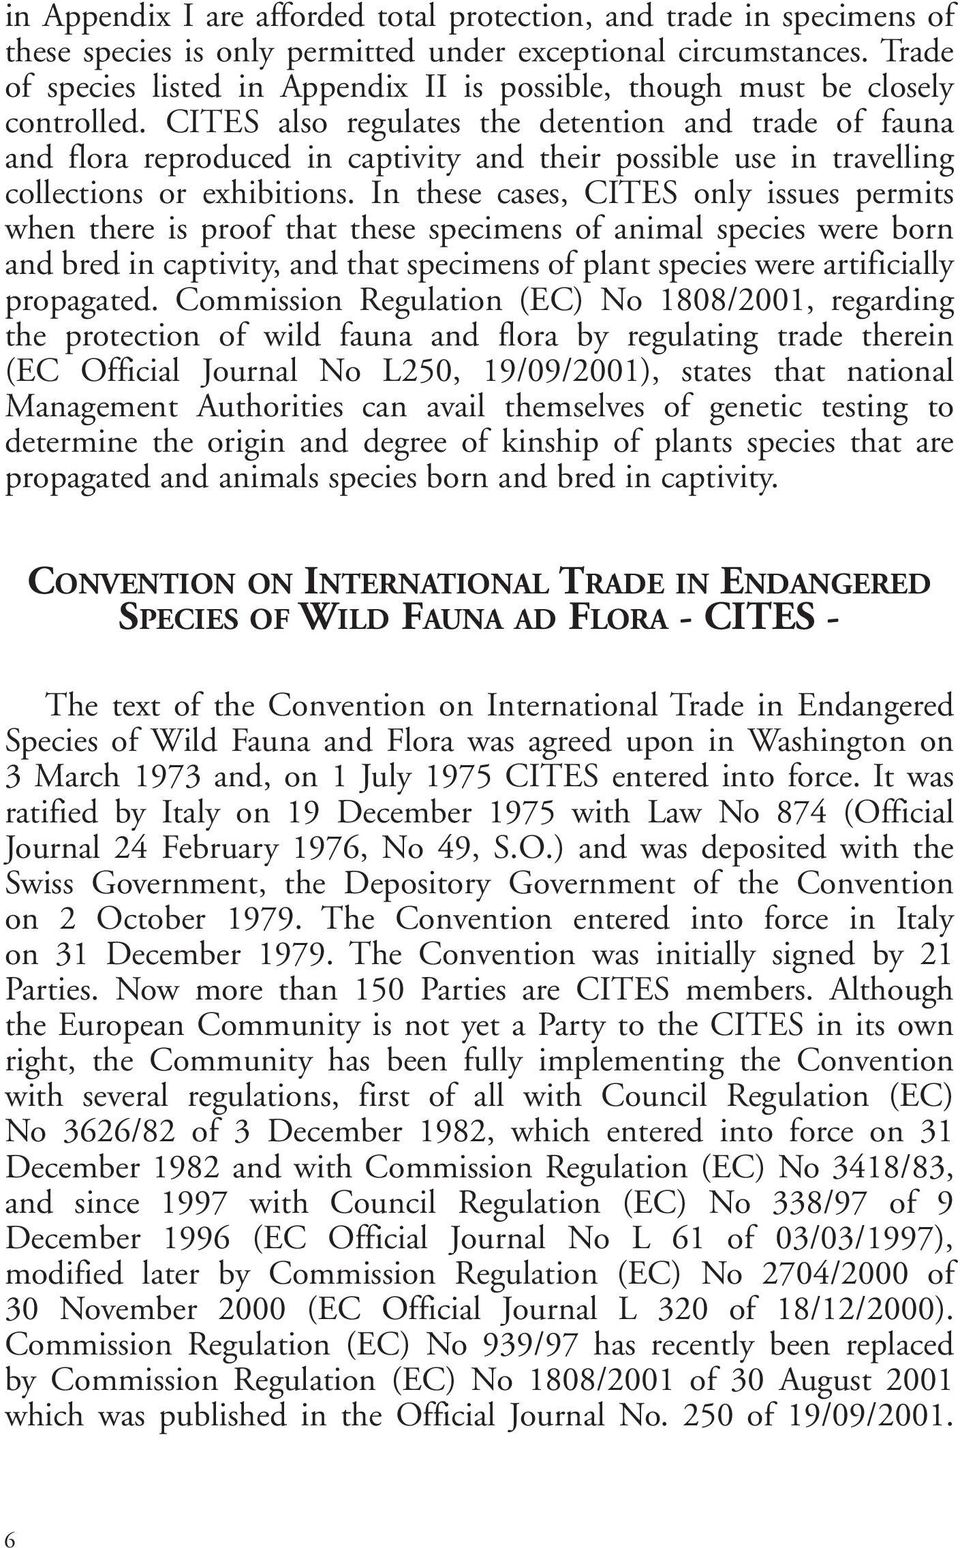 CITES also regulates the detention and trade of fauna and flora reproduced in captivity and their possible use in travelling collections or exhibitions.